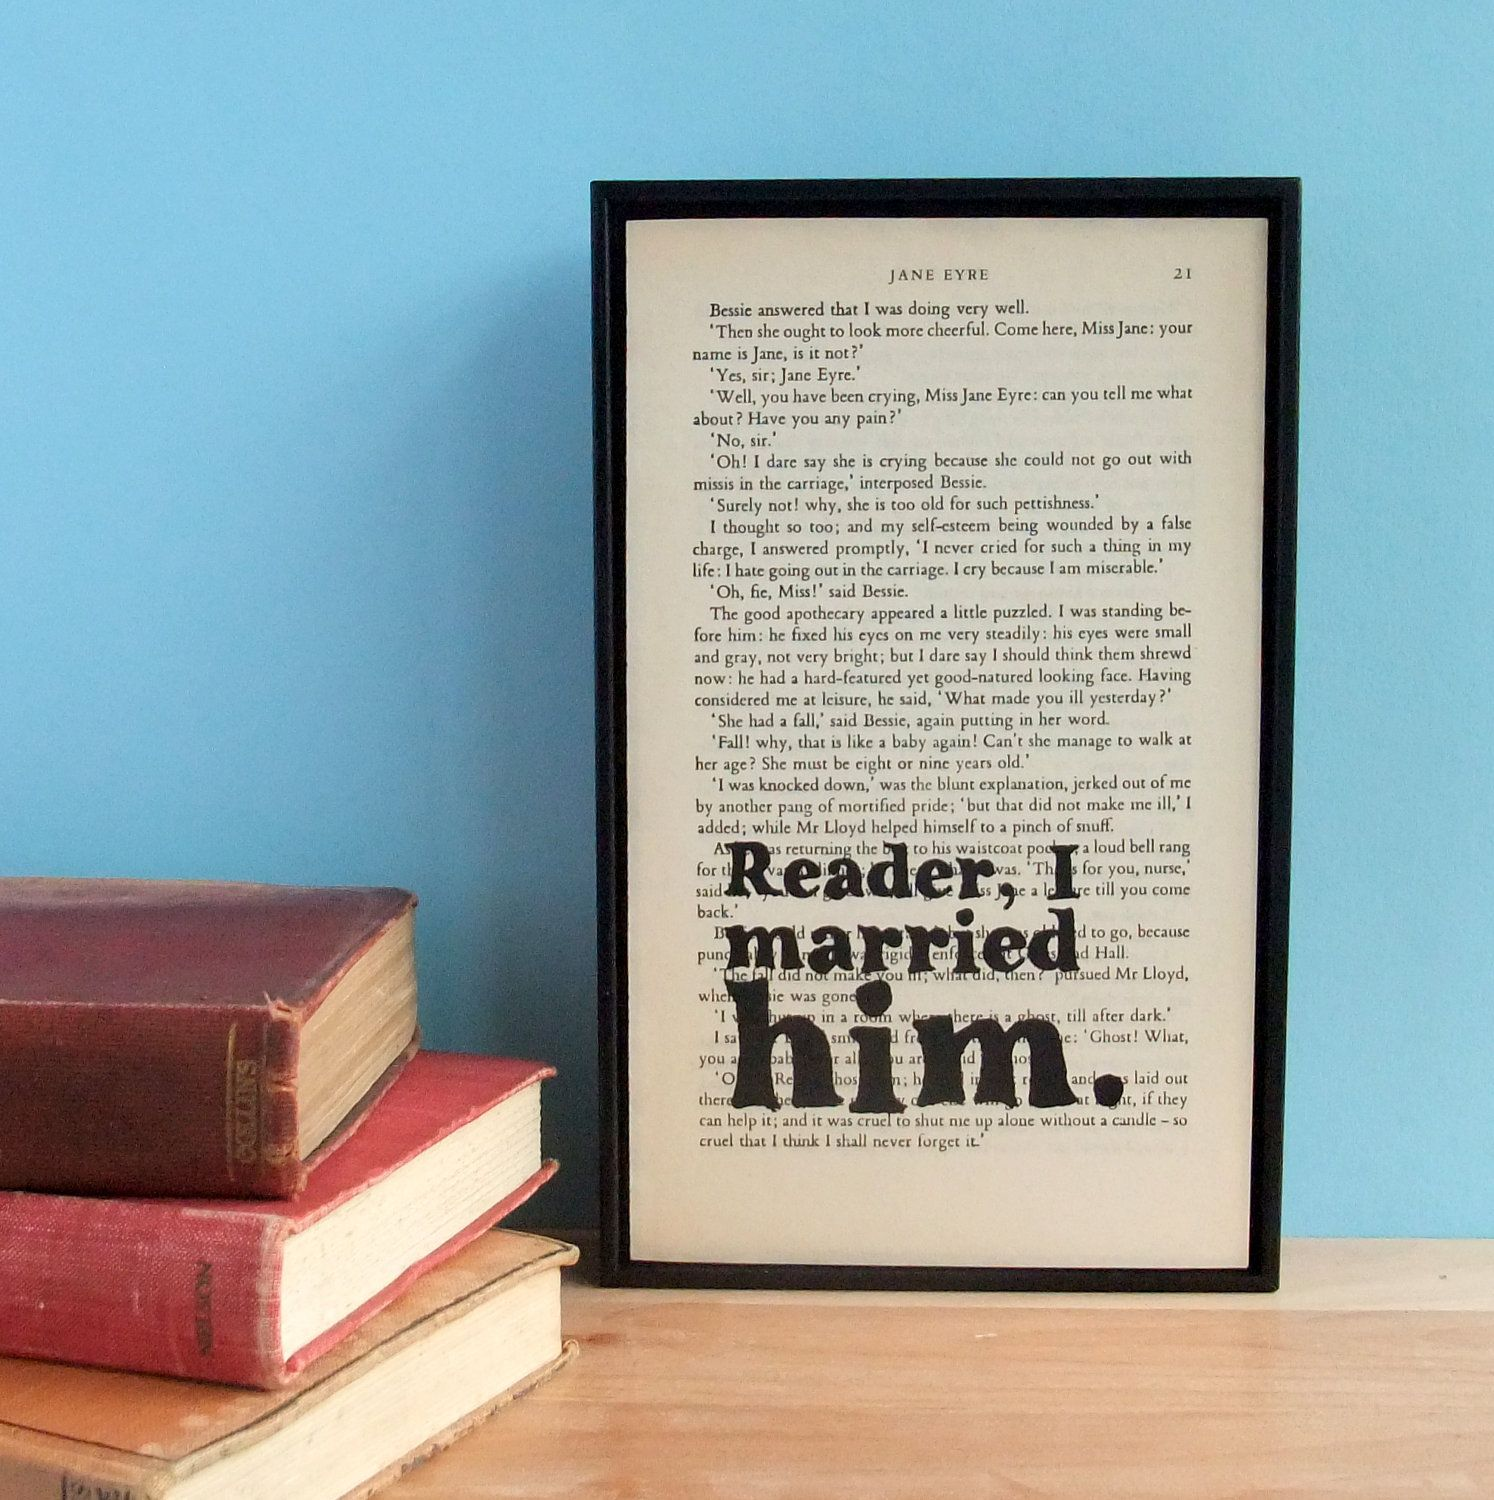 Wedding decorations quotes  Jane Eyre quote on J E book page Had to pin this because of my